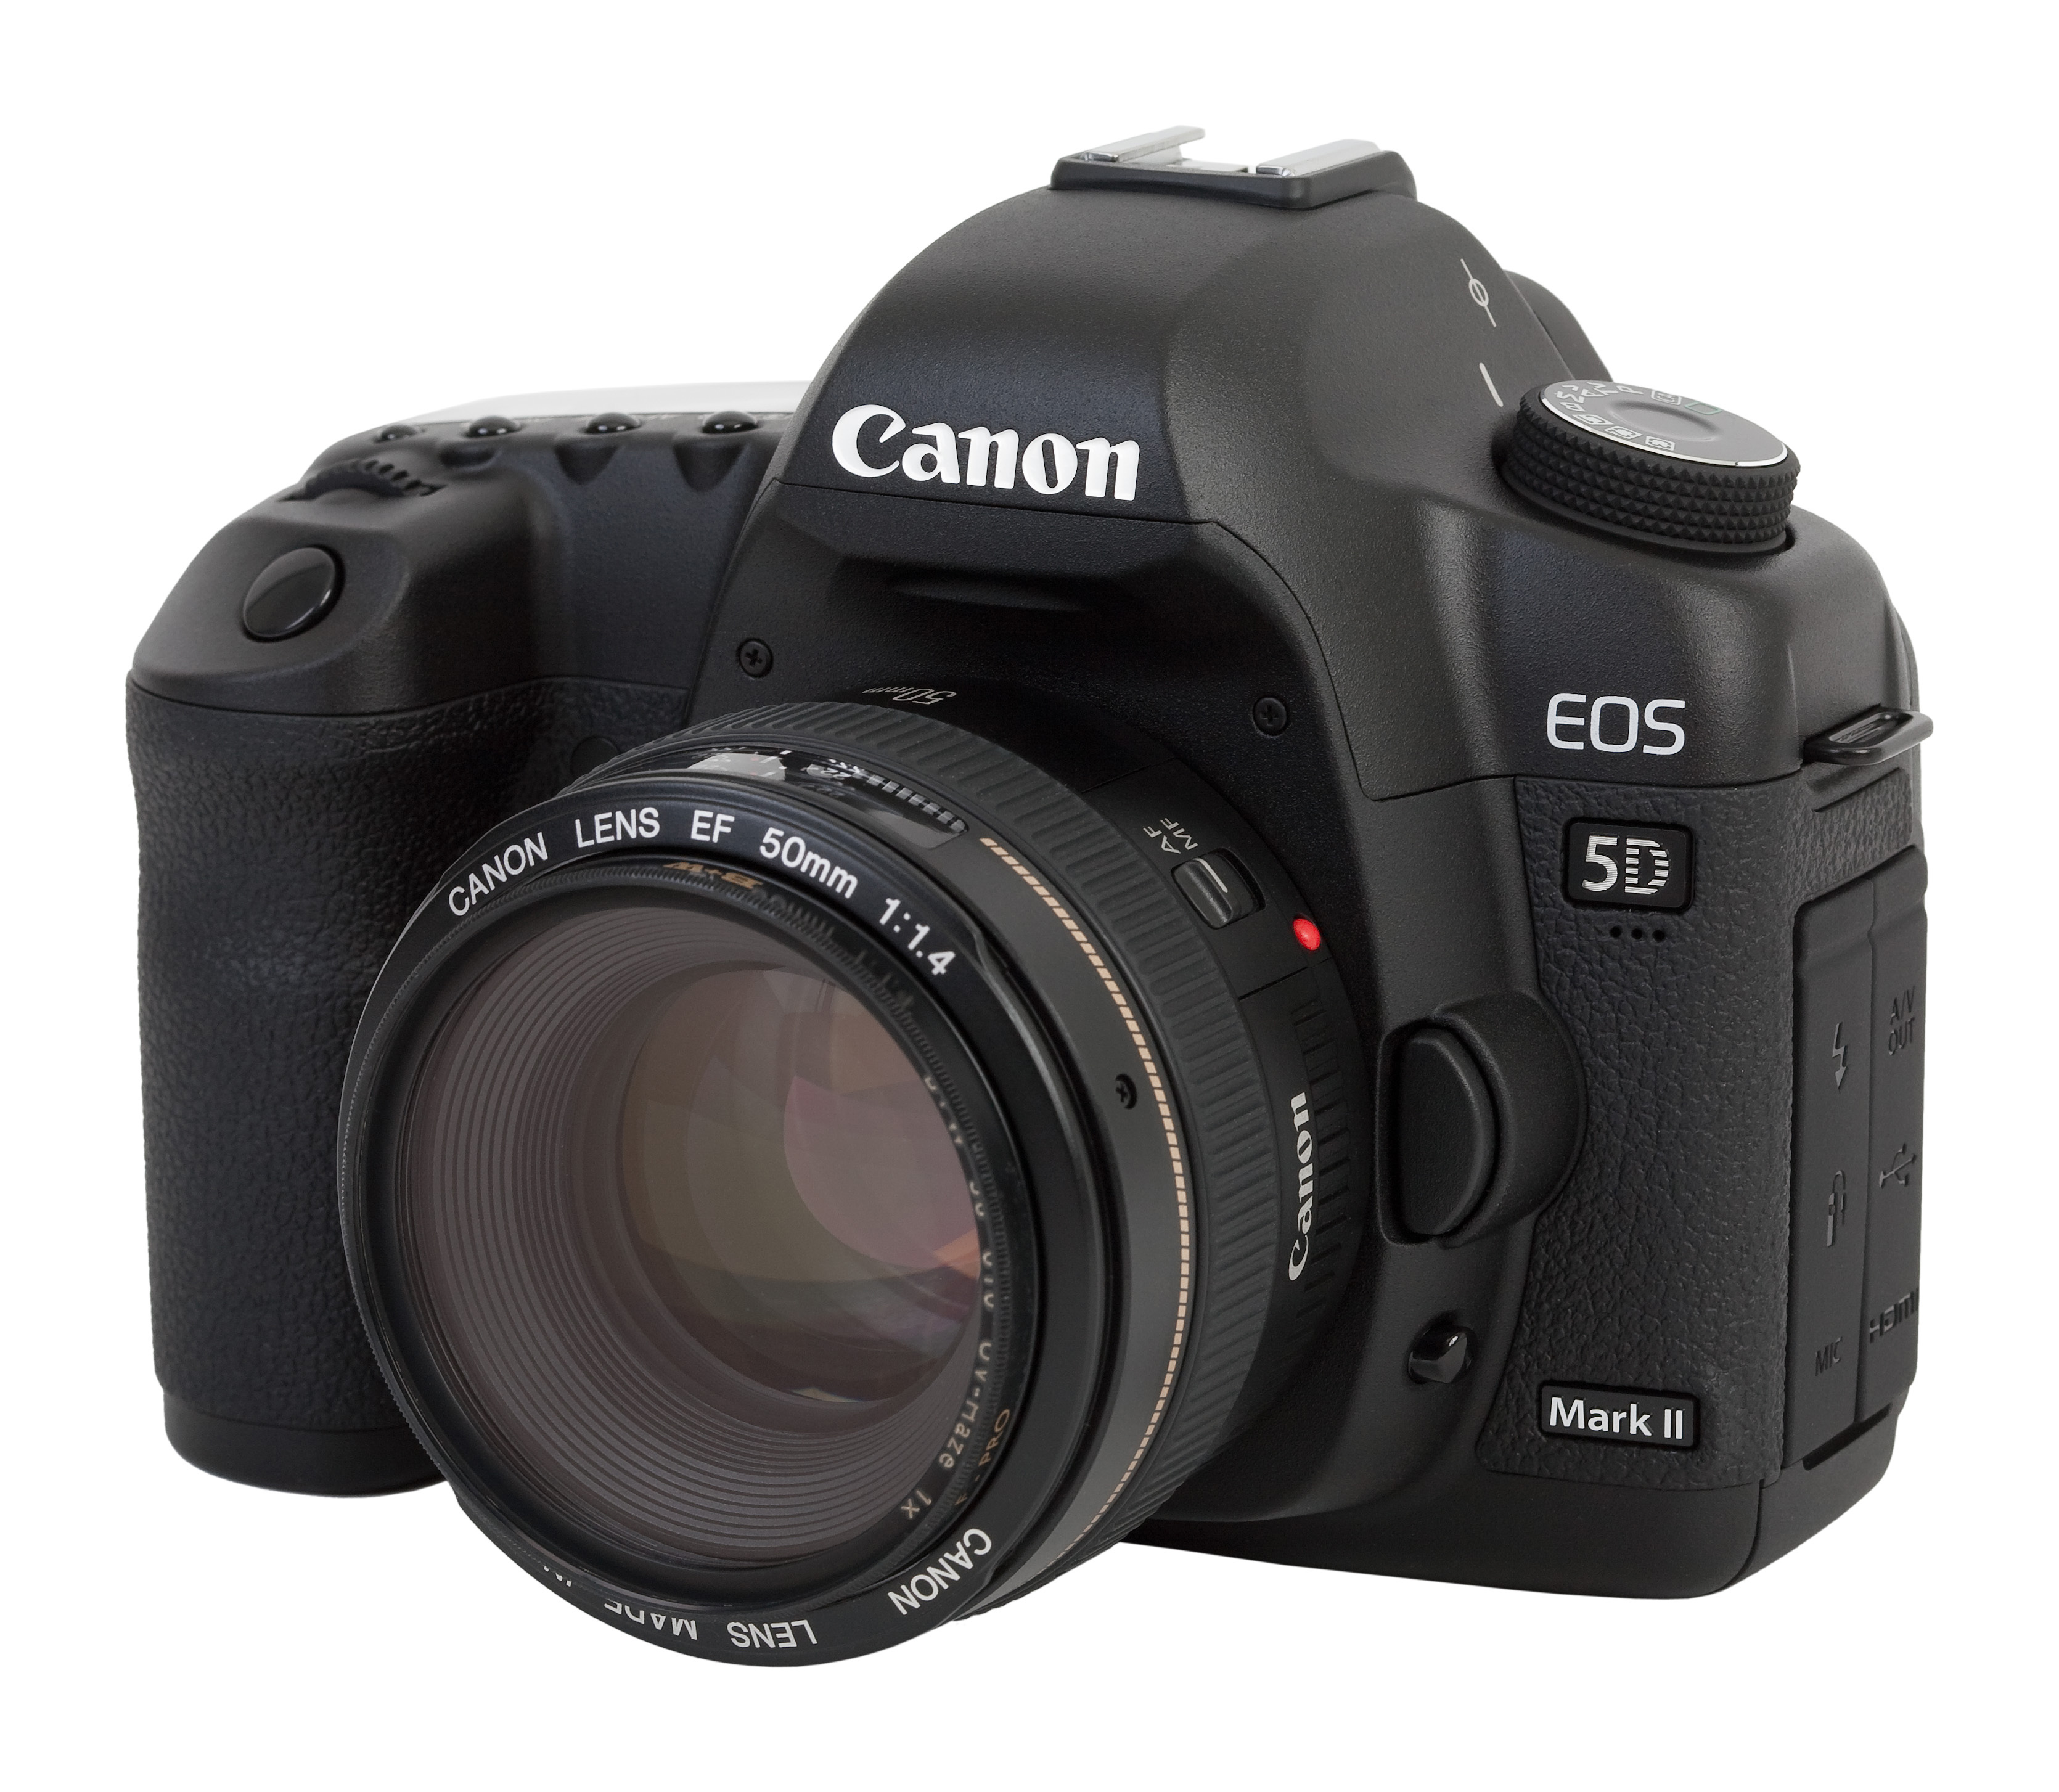 canon eos 5d mark ii wikiwand. Black Bedroom Furniture Sets. Home Design Ideas